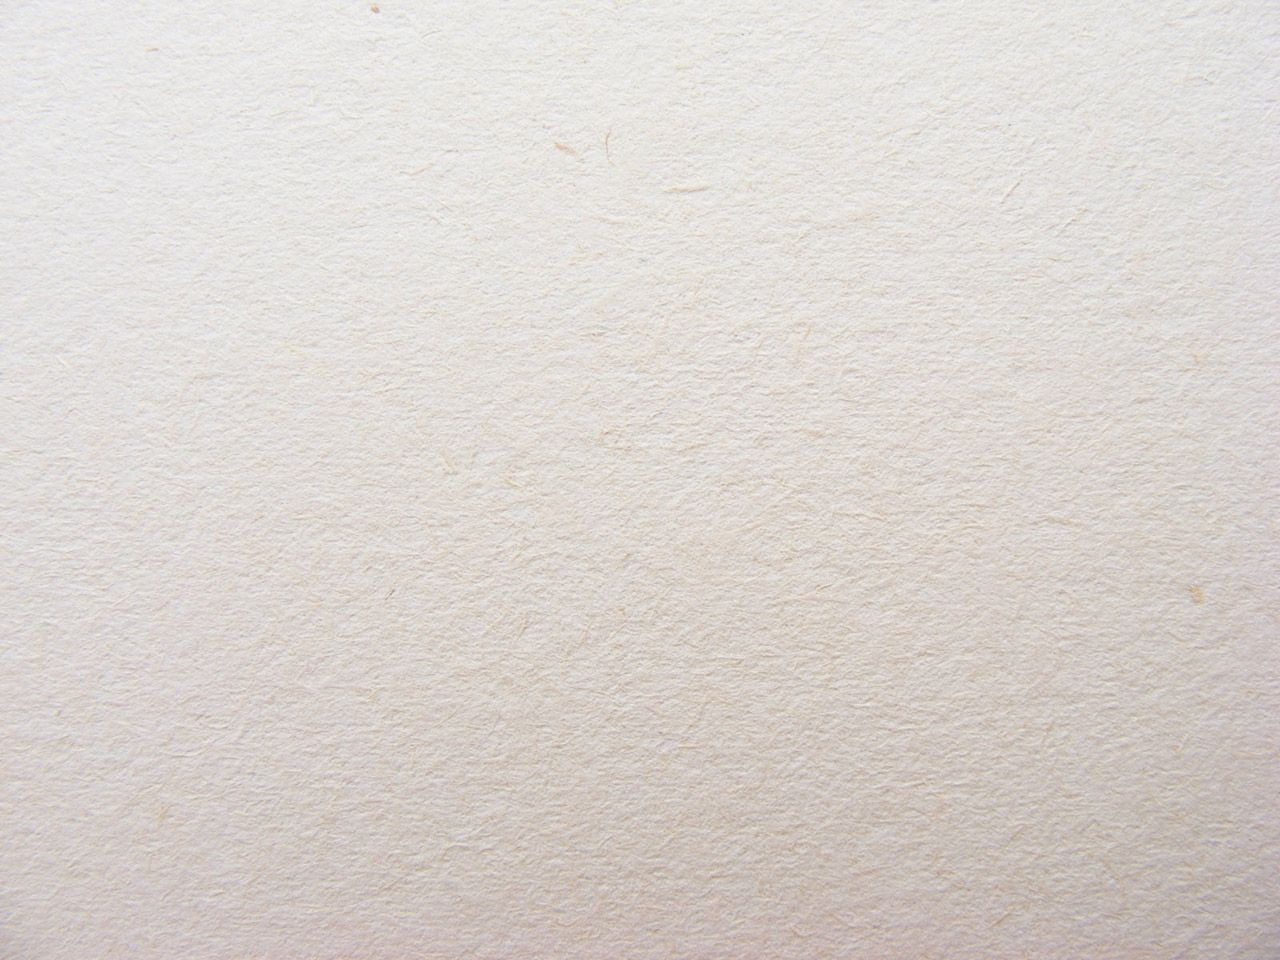 Rough Beige Paper Texture. Royalty free stock photos. All pictures ...